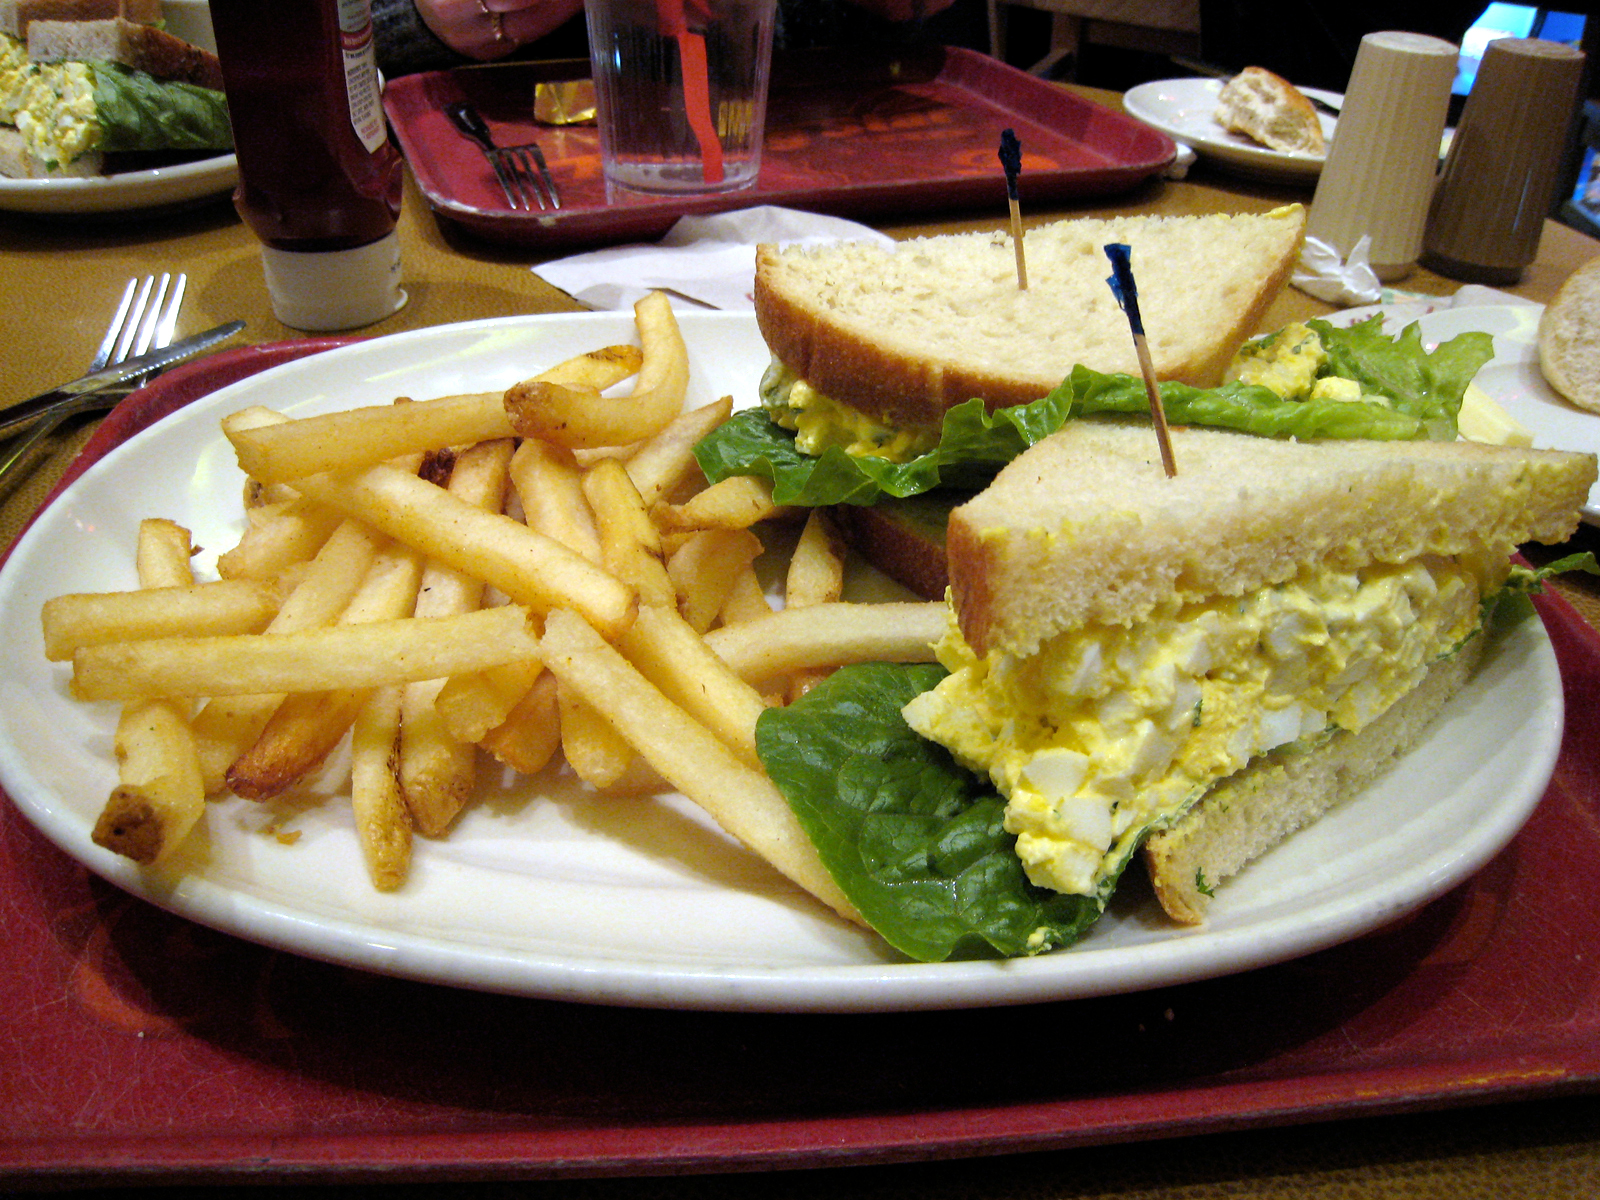 File:Egg salad sandwich.jpg - Wikipedia, the free encyclopedia